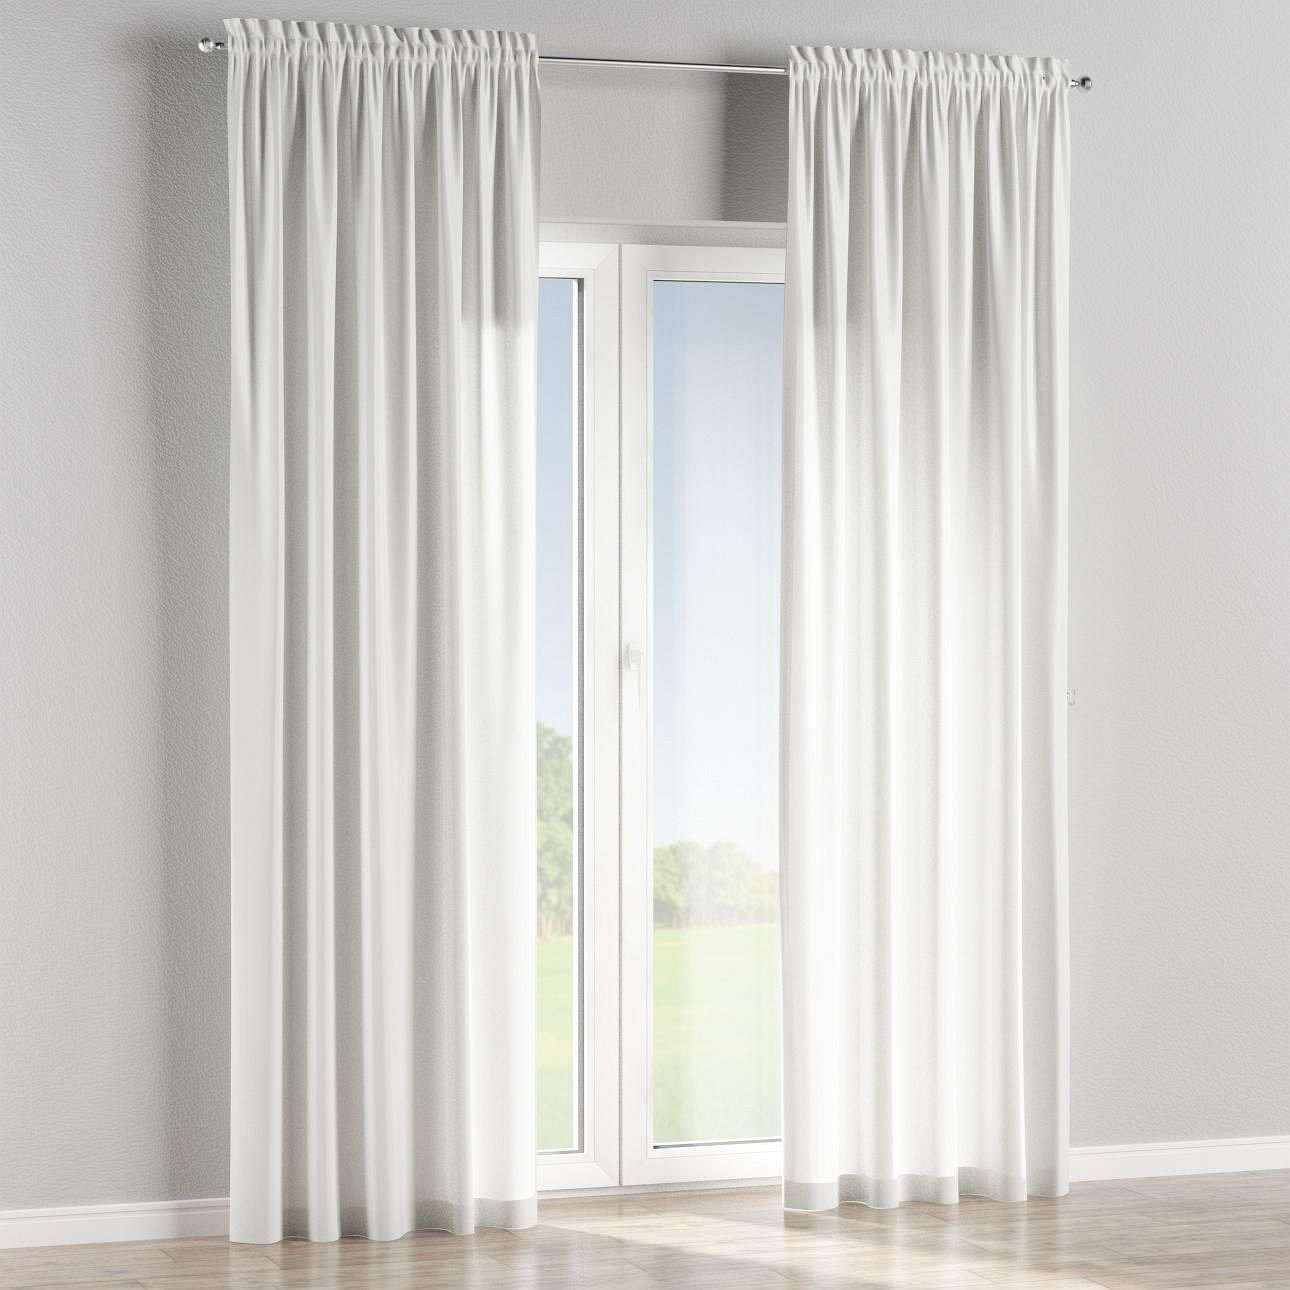 Slot and frill curtains in collection Victoria, fabric: 130-09